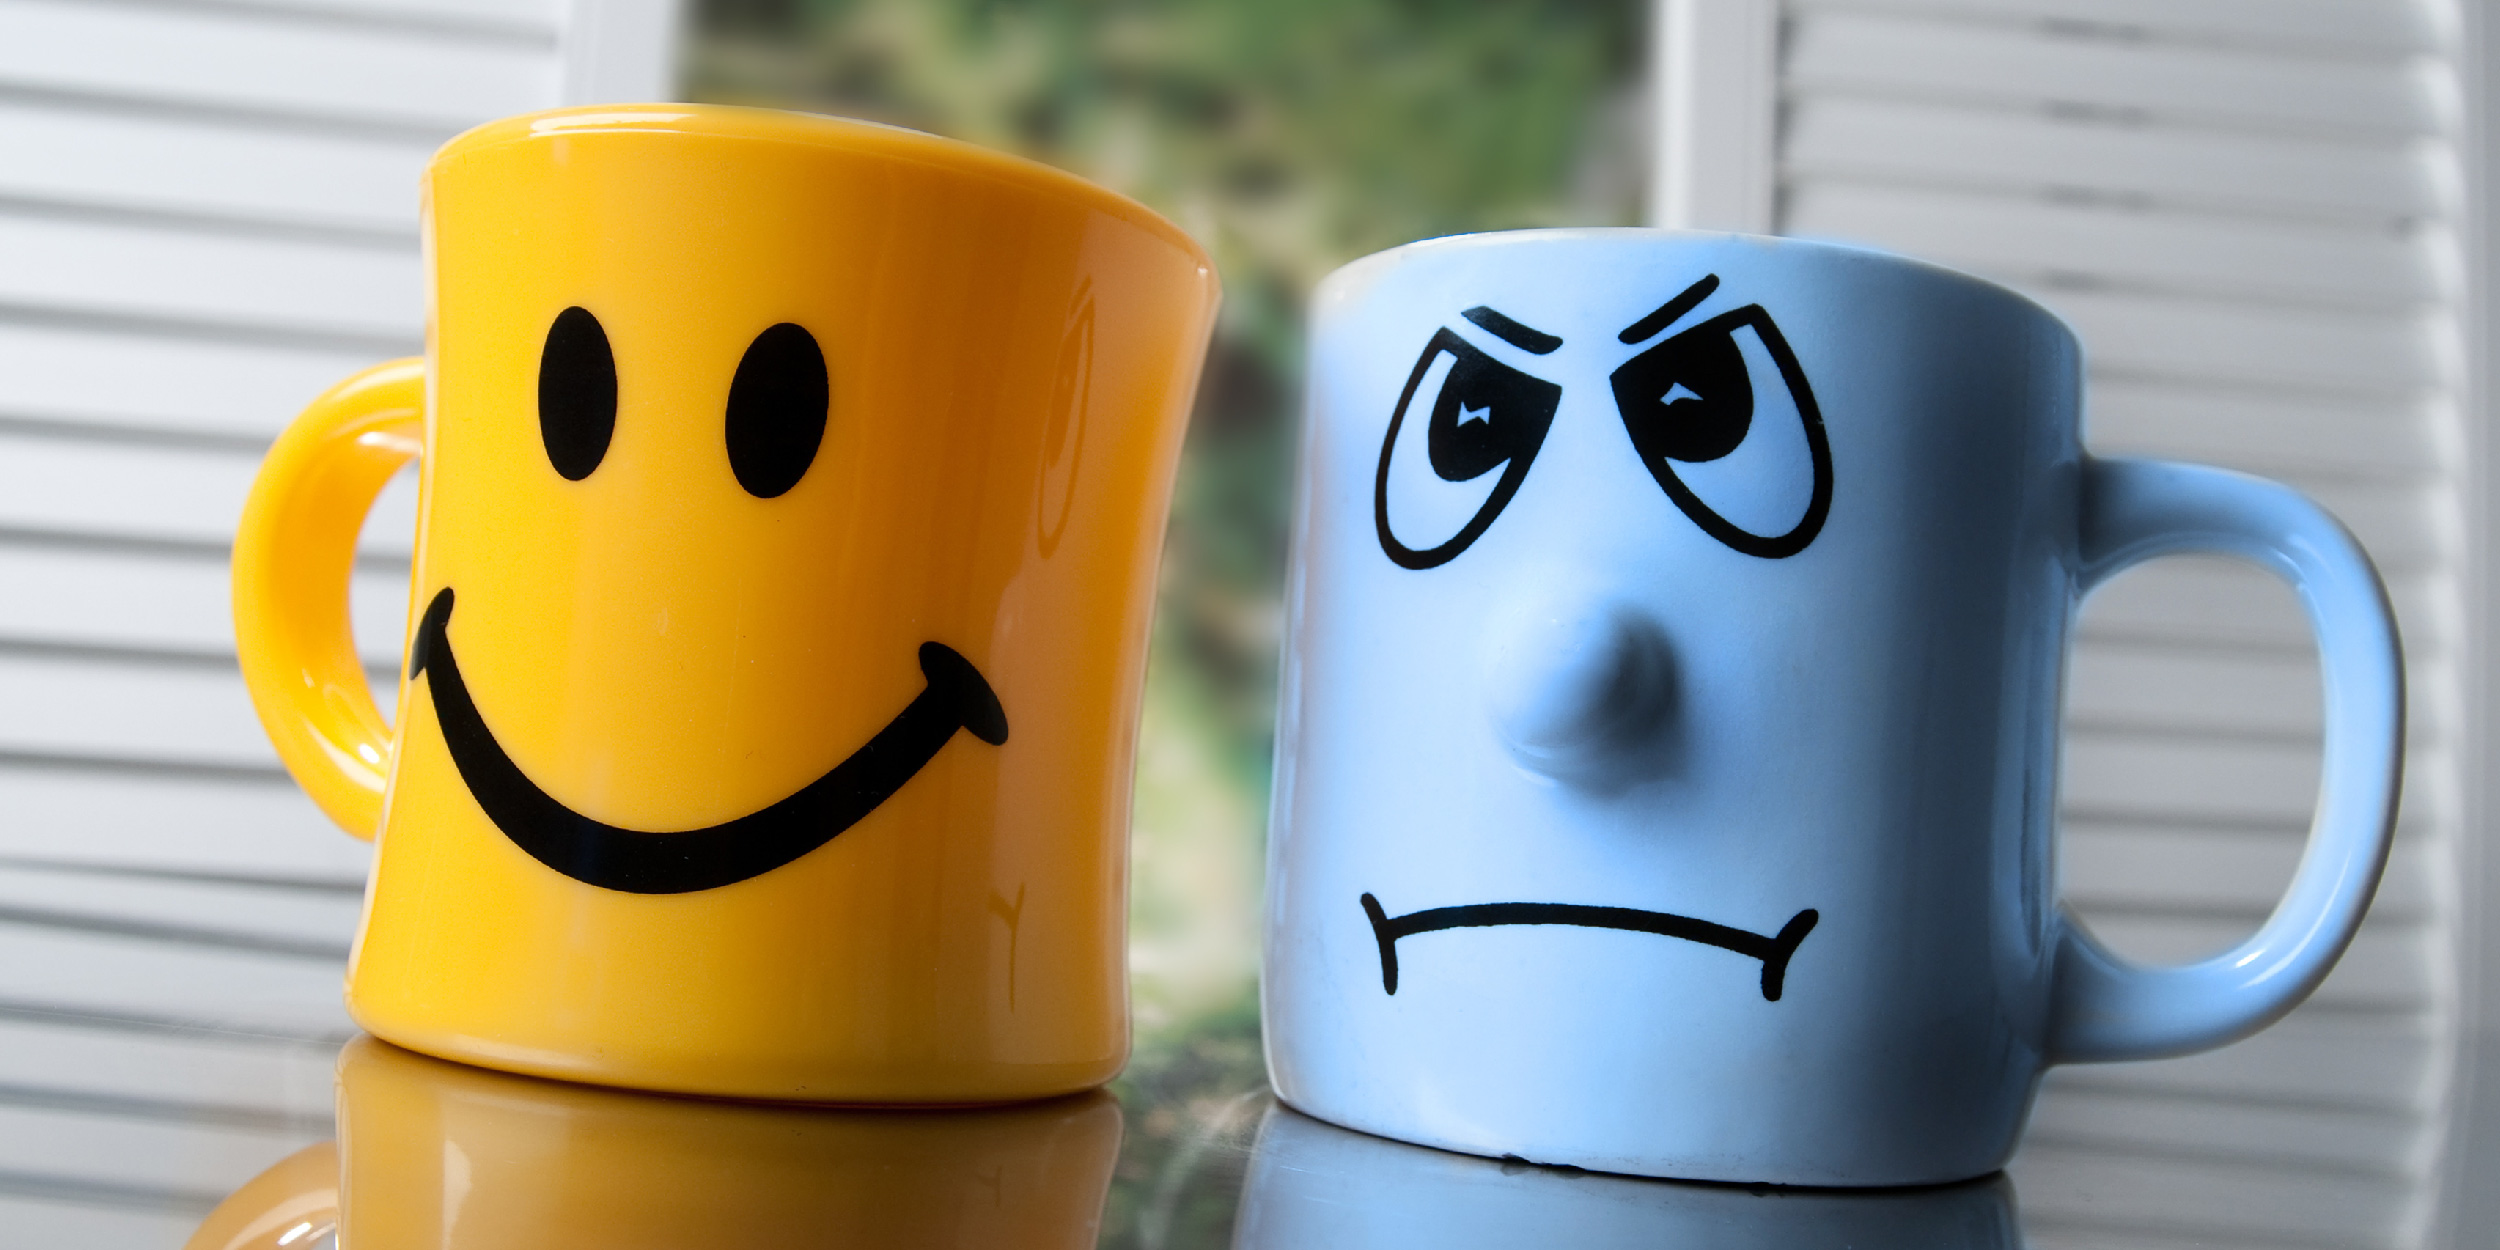 Happy and Sad Mugs demonstrate how an executive coach can improve employee outlook and success